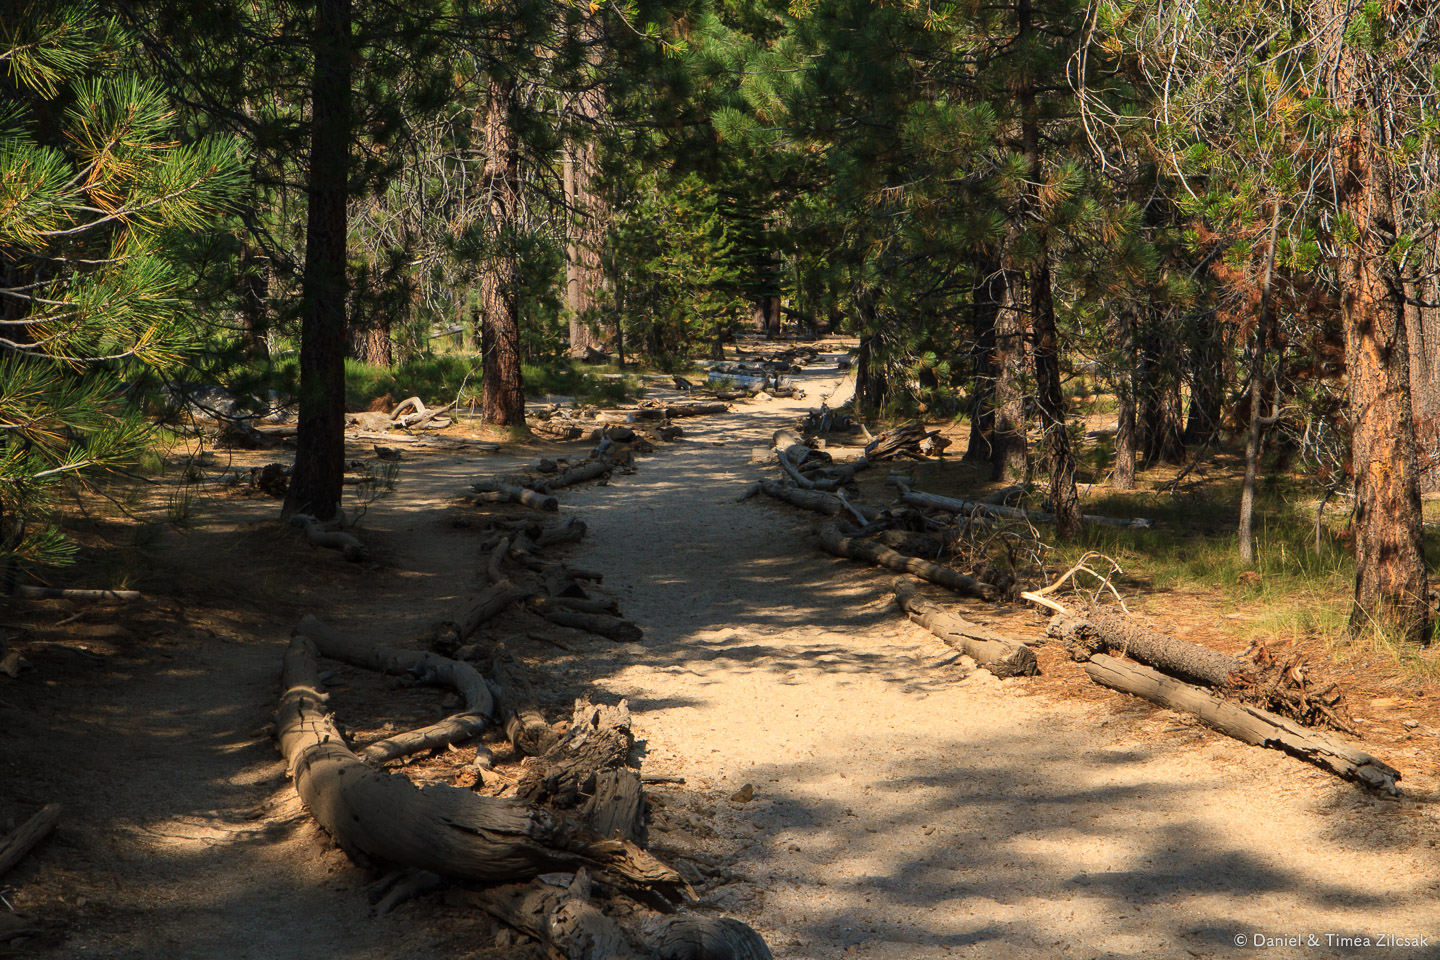 Section of trail in Little Yosemite Valley, near the campground where we spent two nights